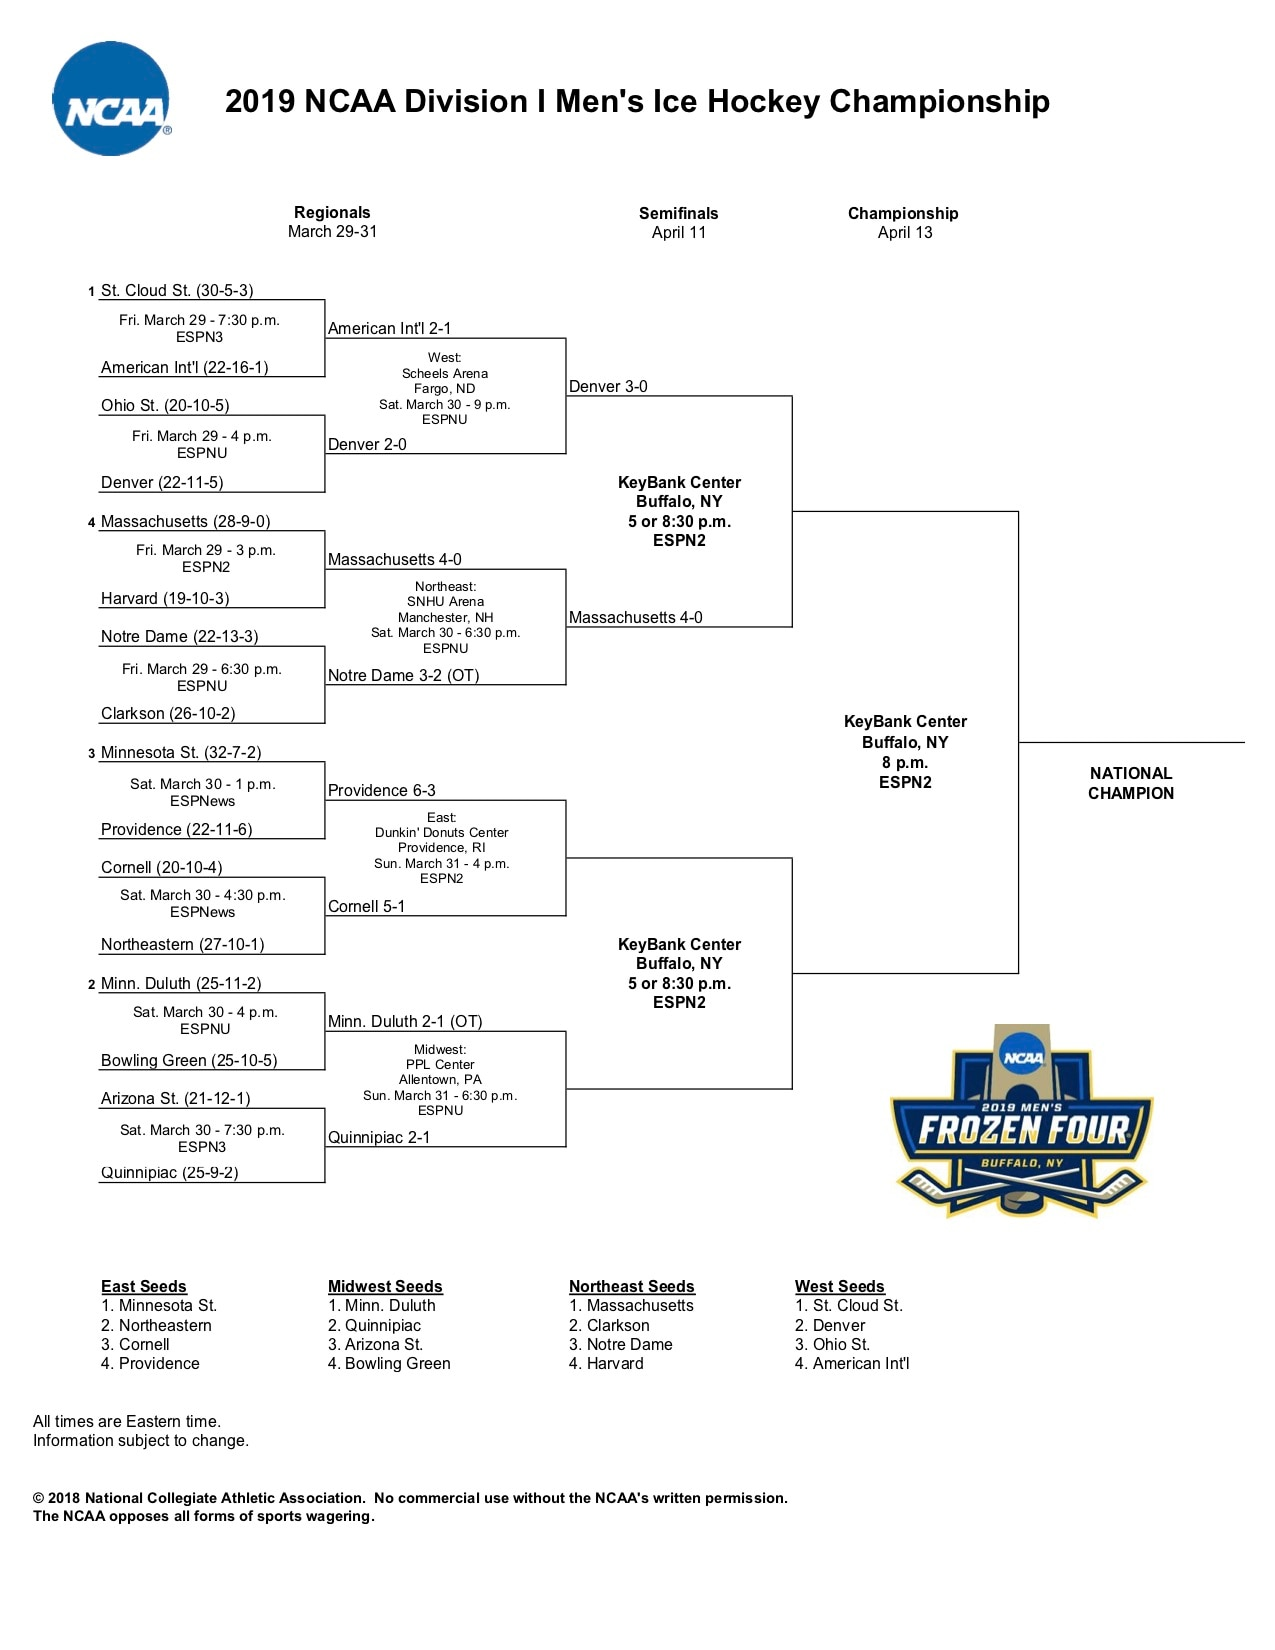 picture regarding Printable Nhl Playoff Bracket called Frozen 4 bracket: Printable 2019 NCAA hockey event